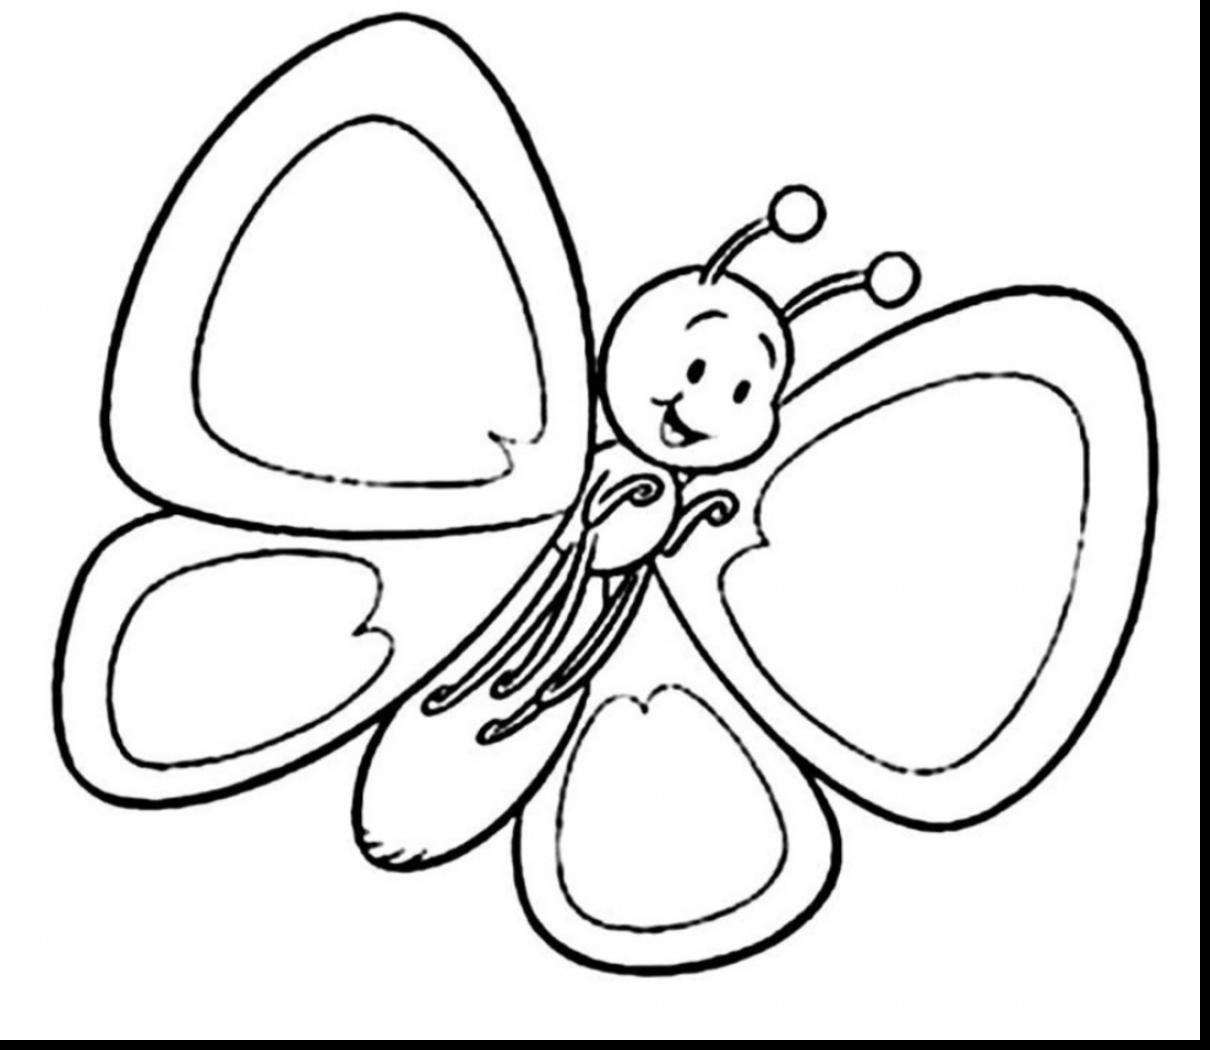 1210x1050 Superb Butterflies Clip Art Black And White With Free Butterfly